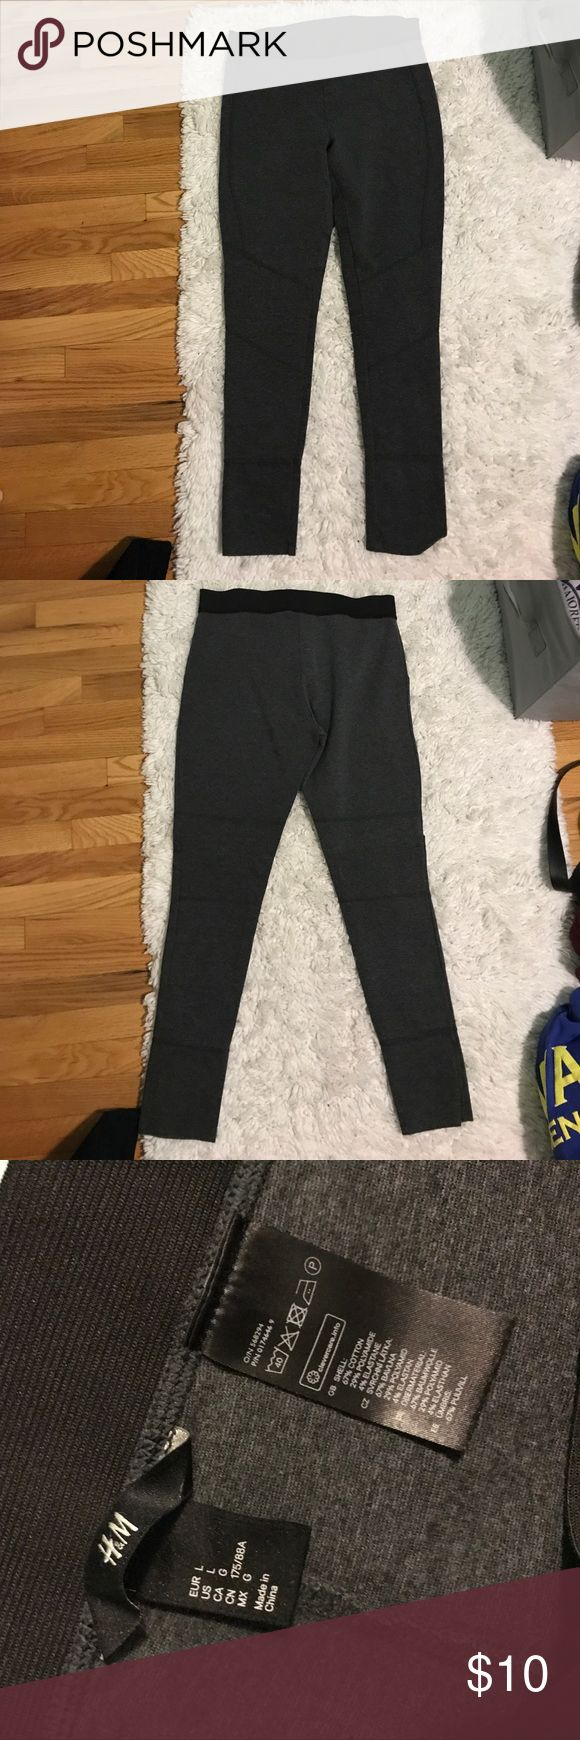 H&M leggings Thicker gray H&M leggings with black elastic waist band. H&M Pants Leggings